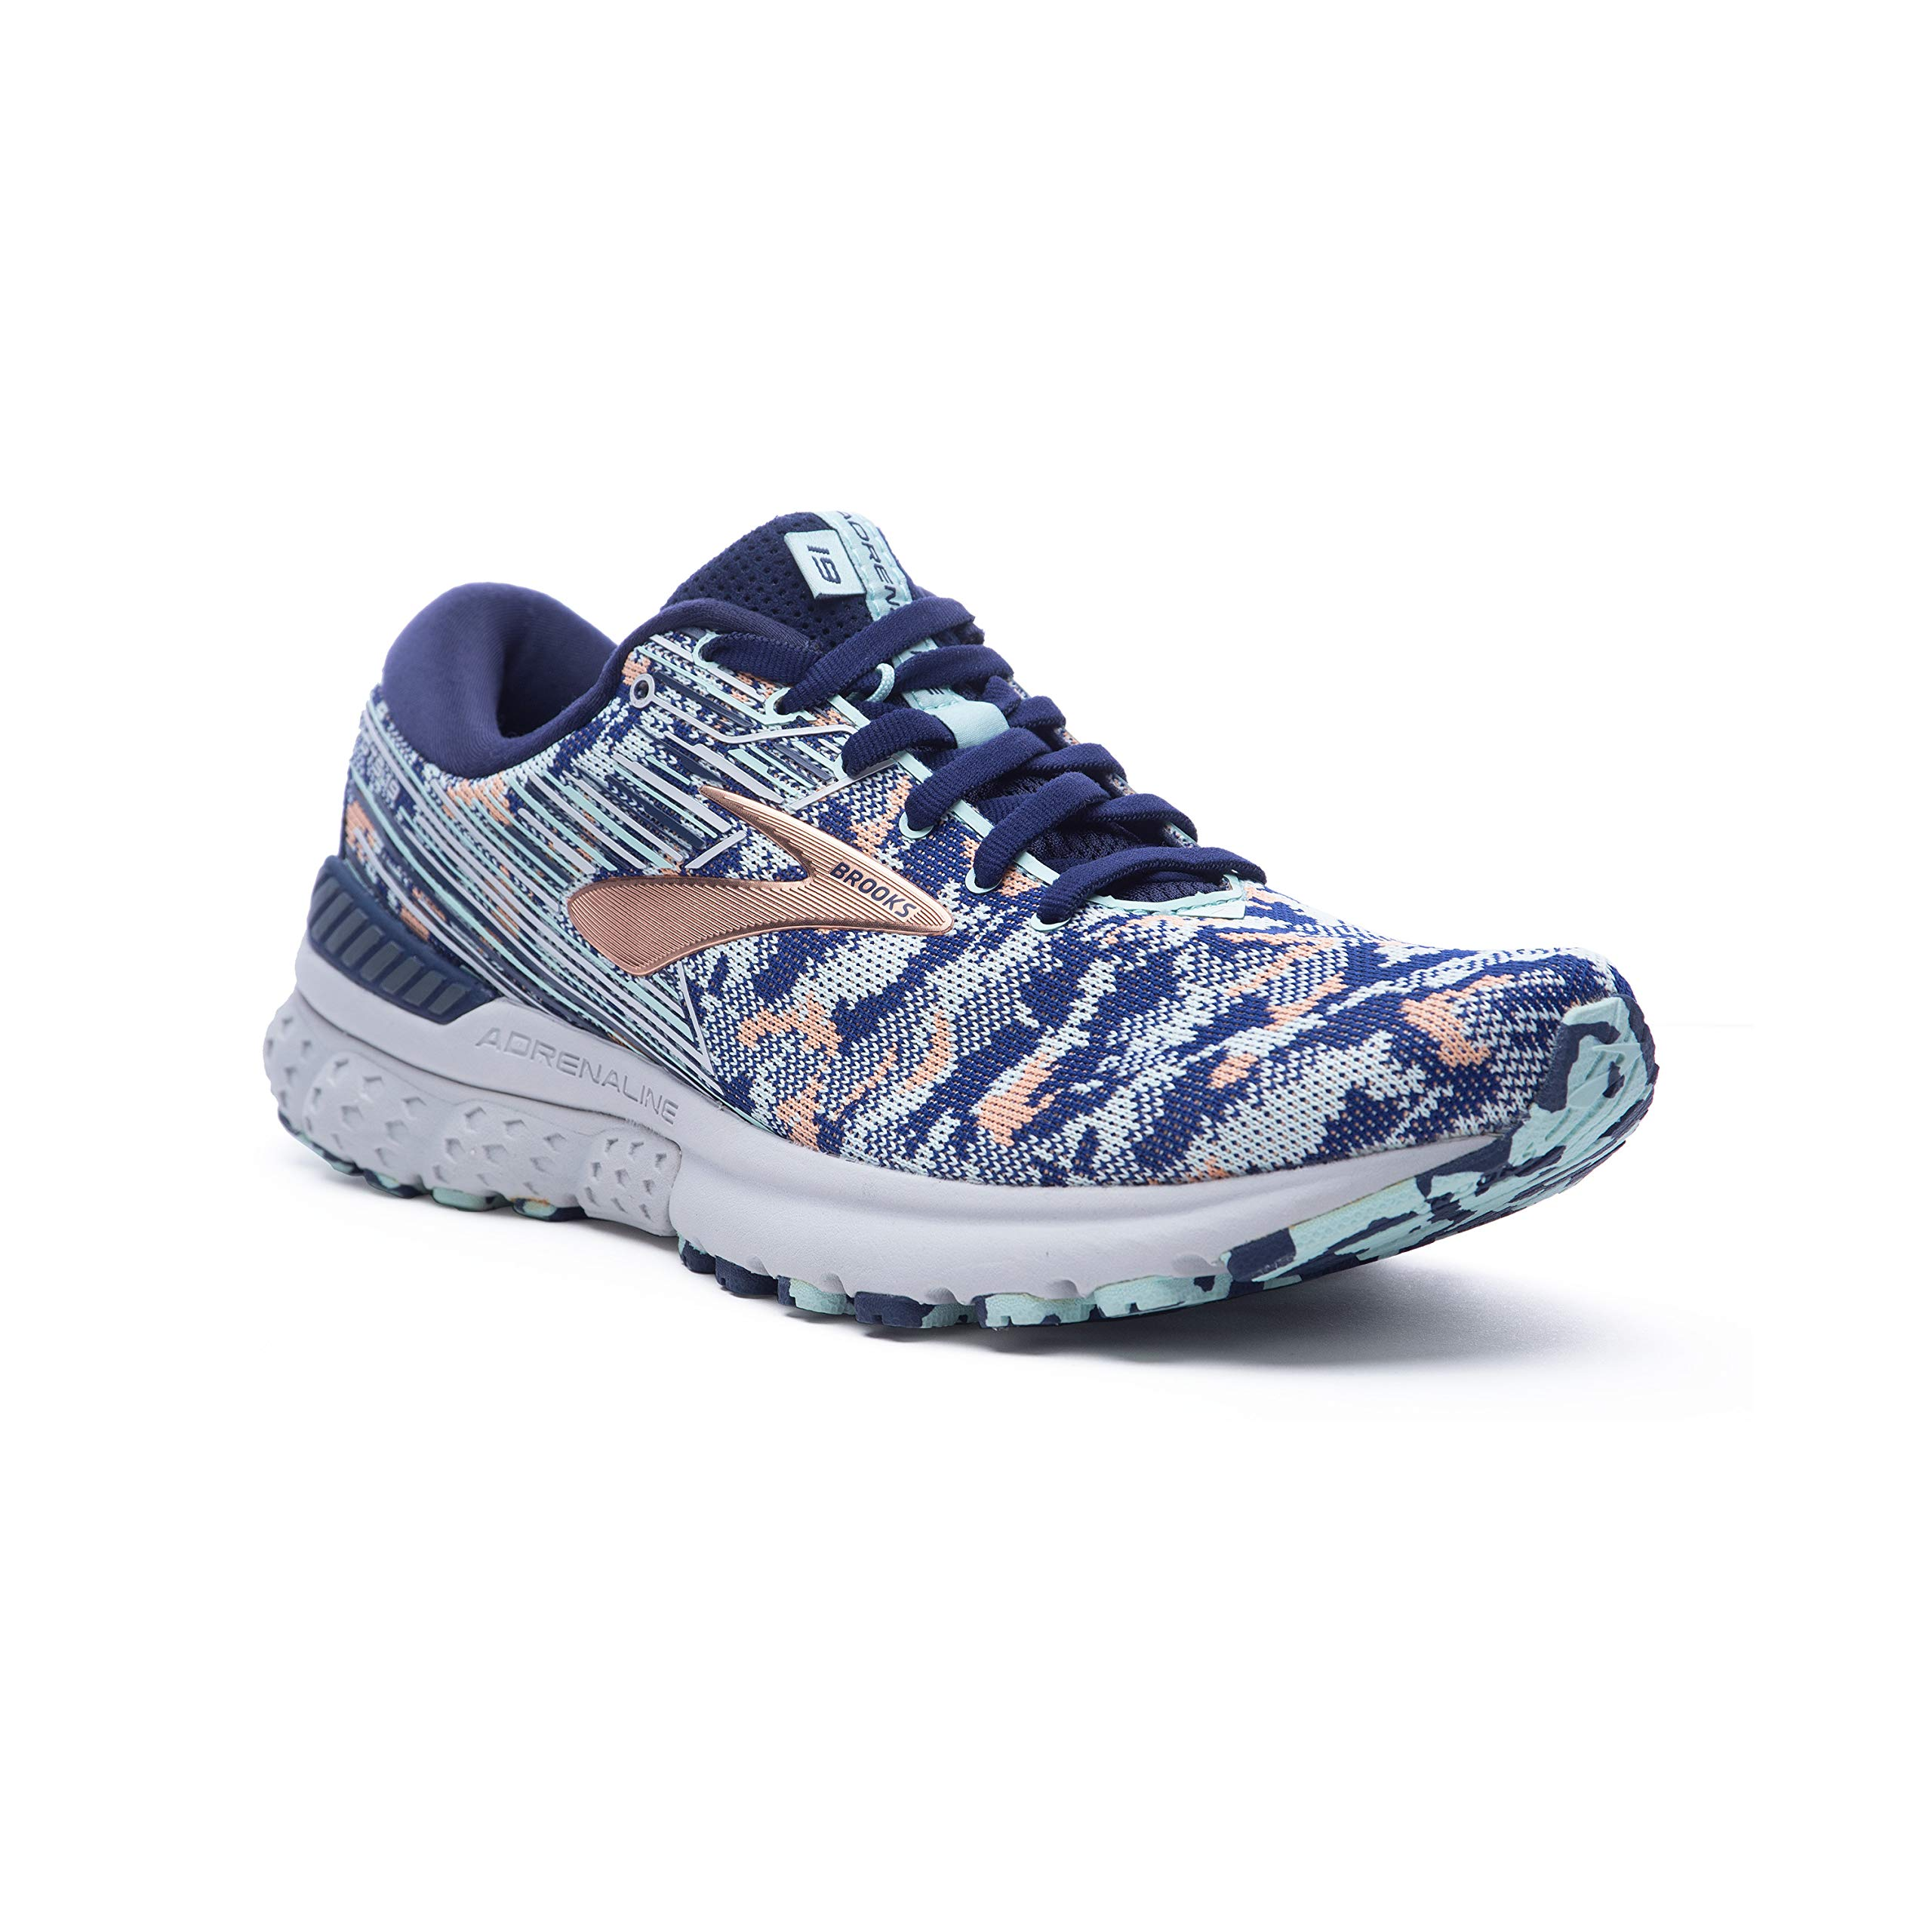 Brooks Womens Adrenaline GTS 19-484 Navy/Coral/Ice - B - 5.0